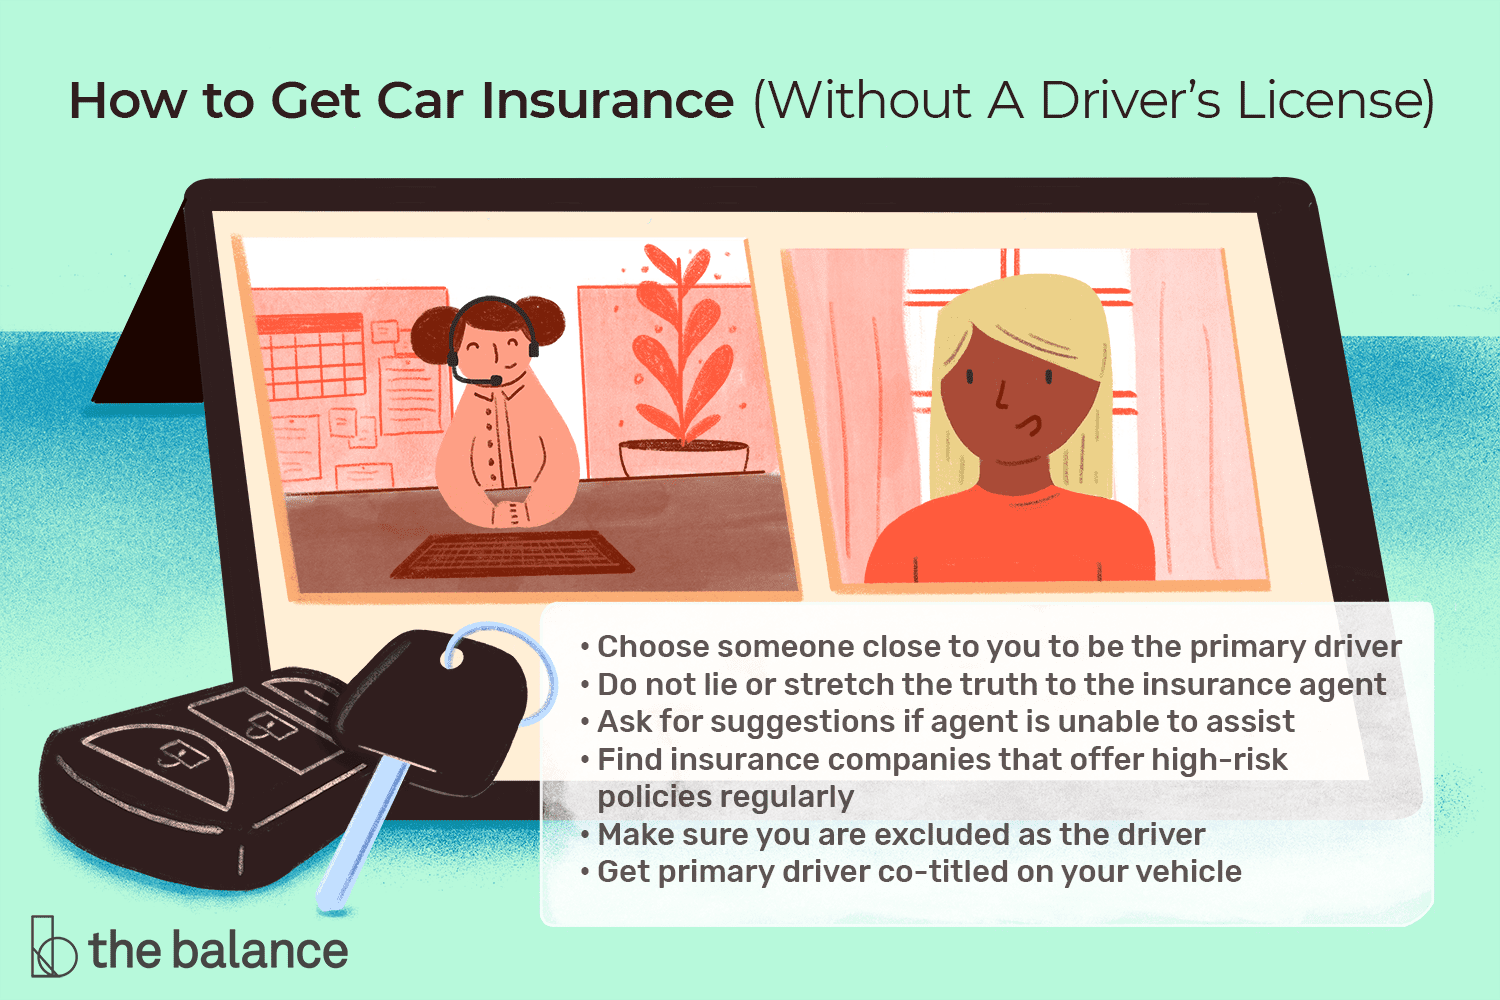 How To Get Car Insurance Without A License